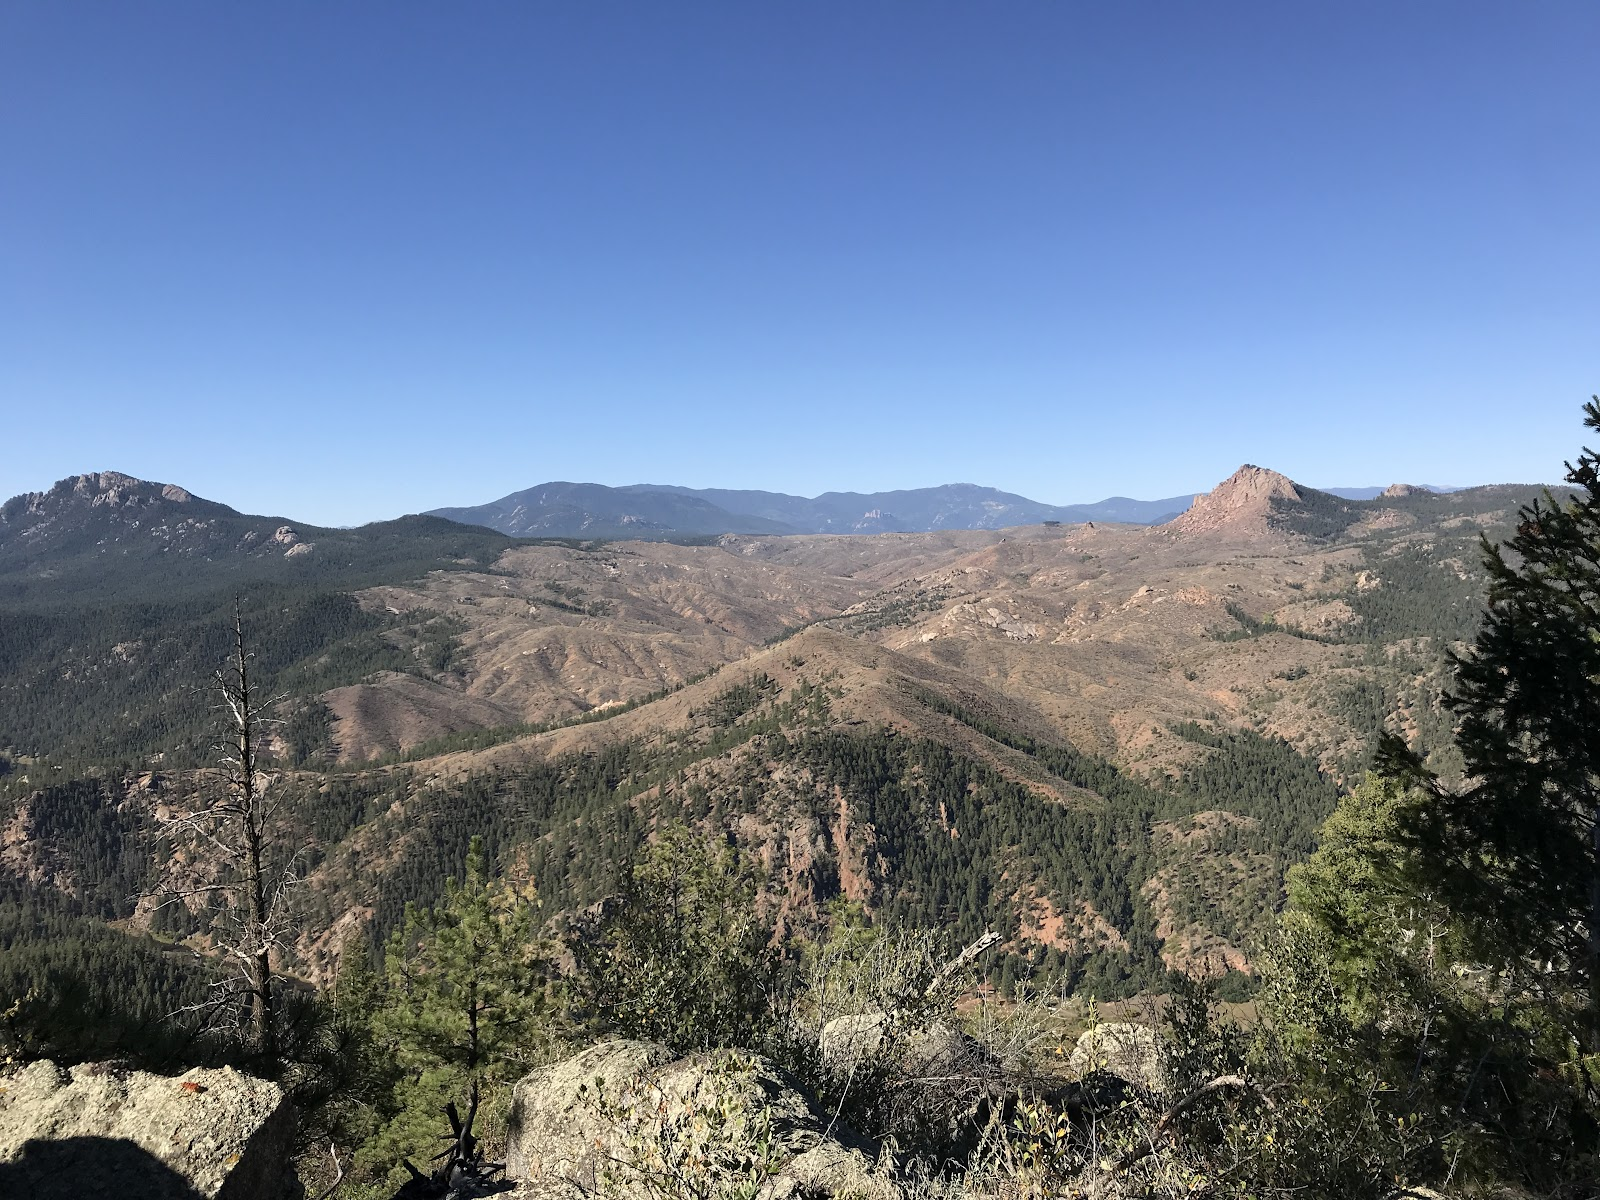 Colorado's beautiful Front Range takes the hiker up 3,500 feet into dry, exposed terrain.